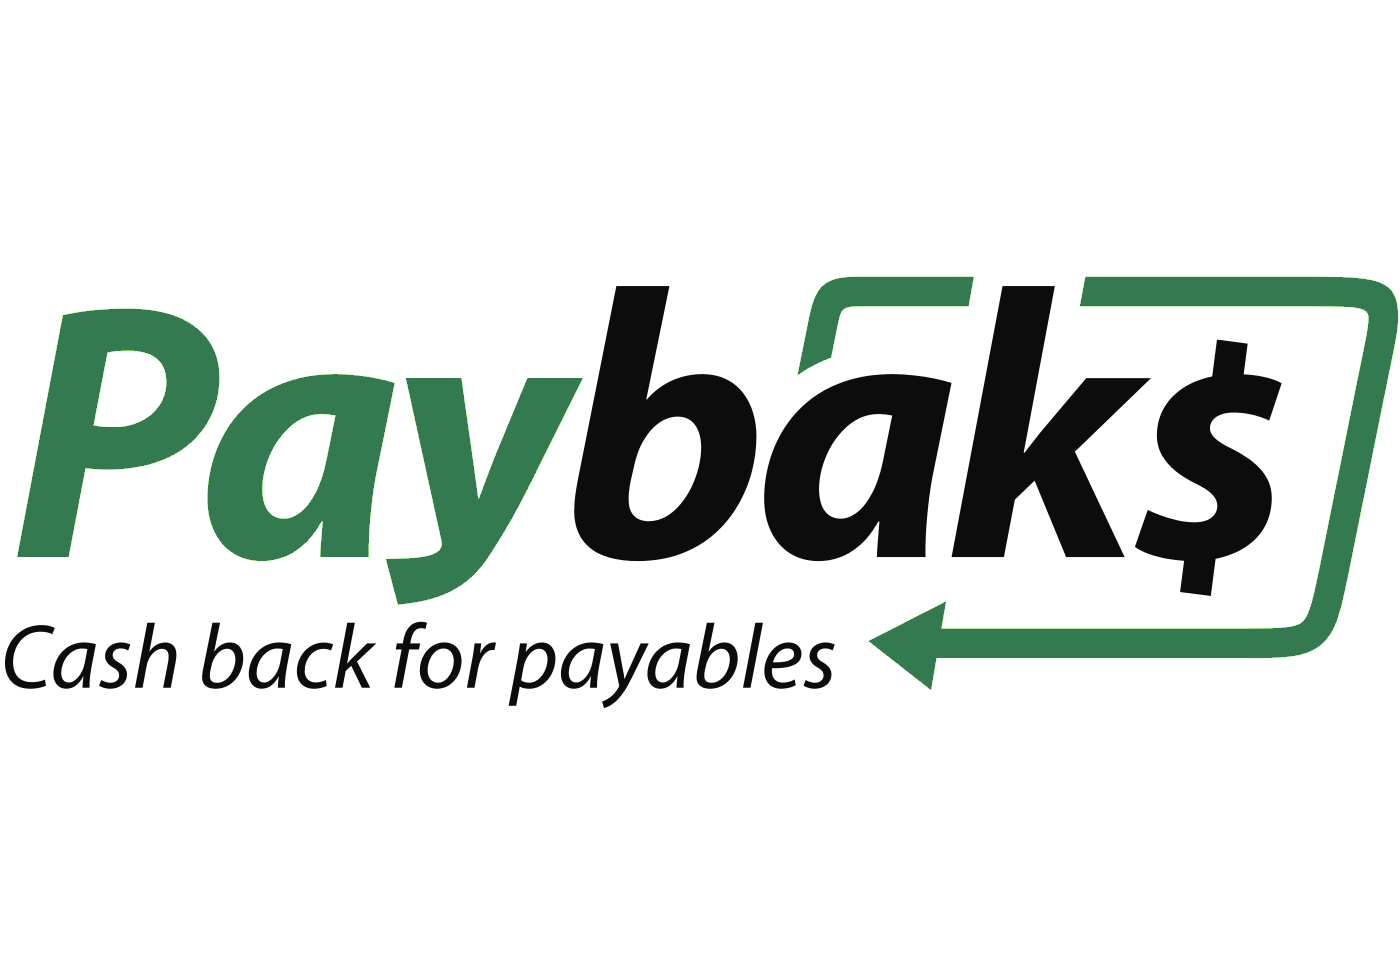 Paybaks Financial